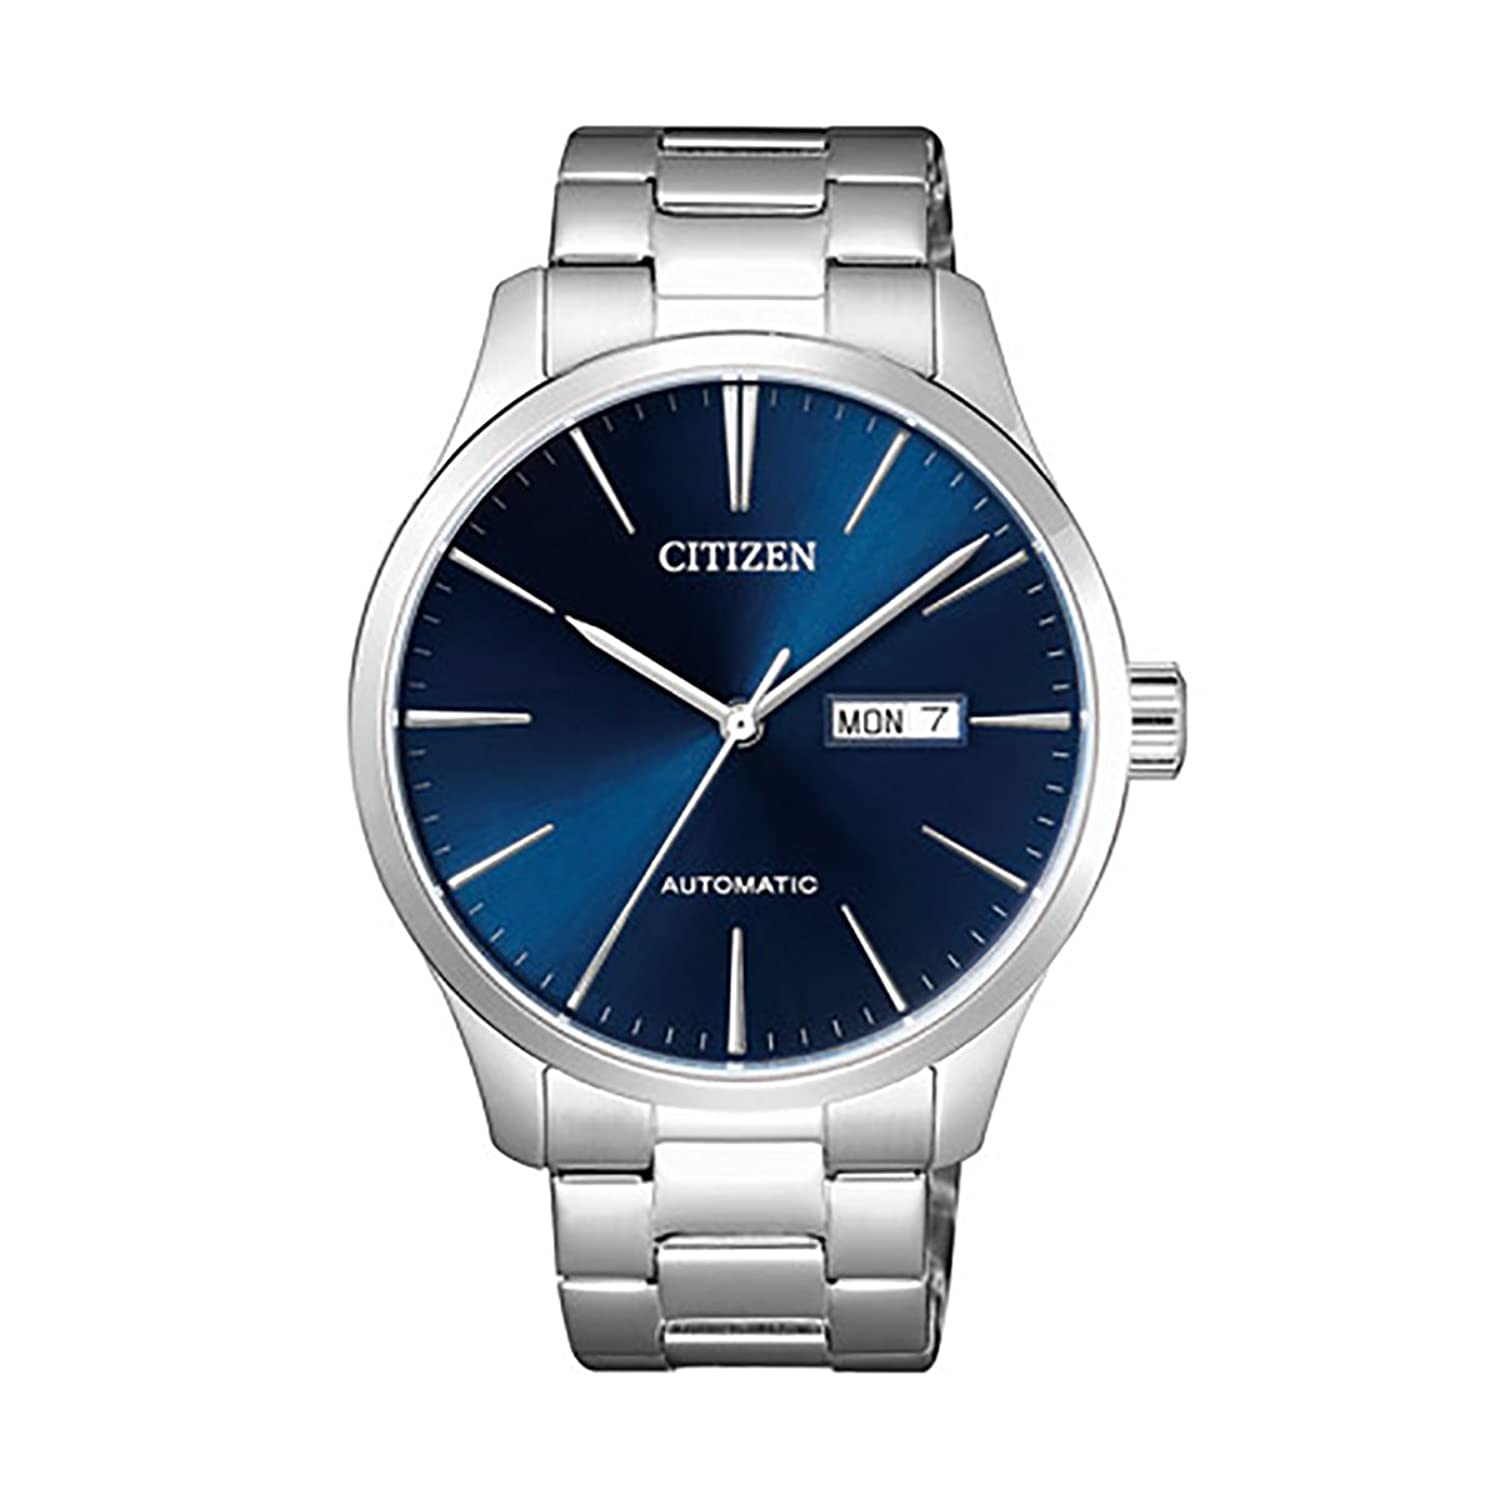 citizen-classic-automatic-blue-sunray-dial-steel-watch-nh8350-83l by citizen